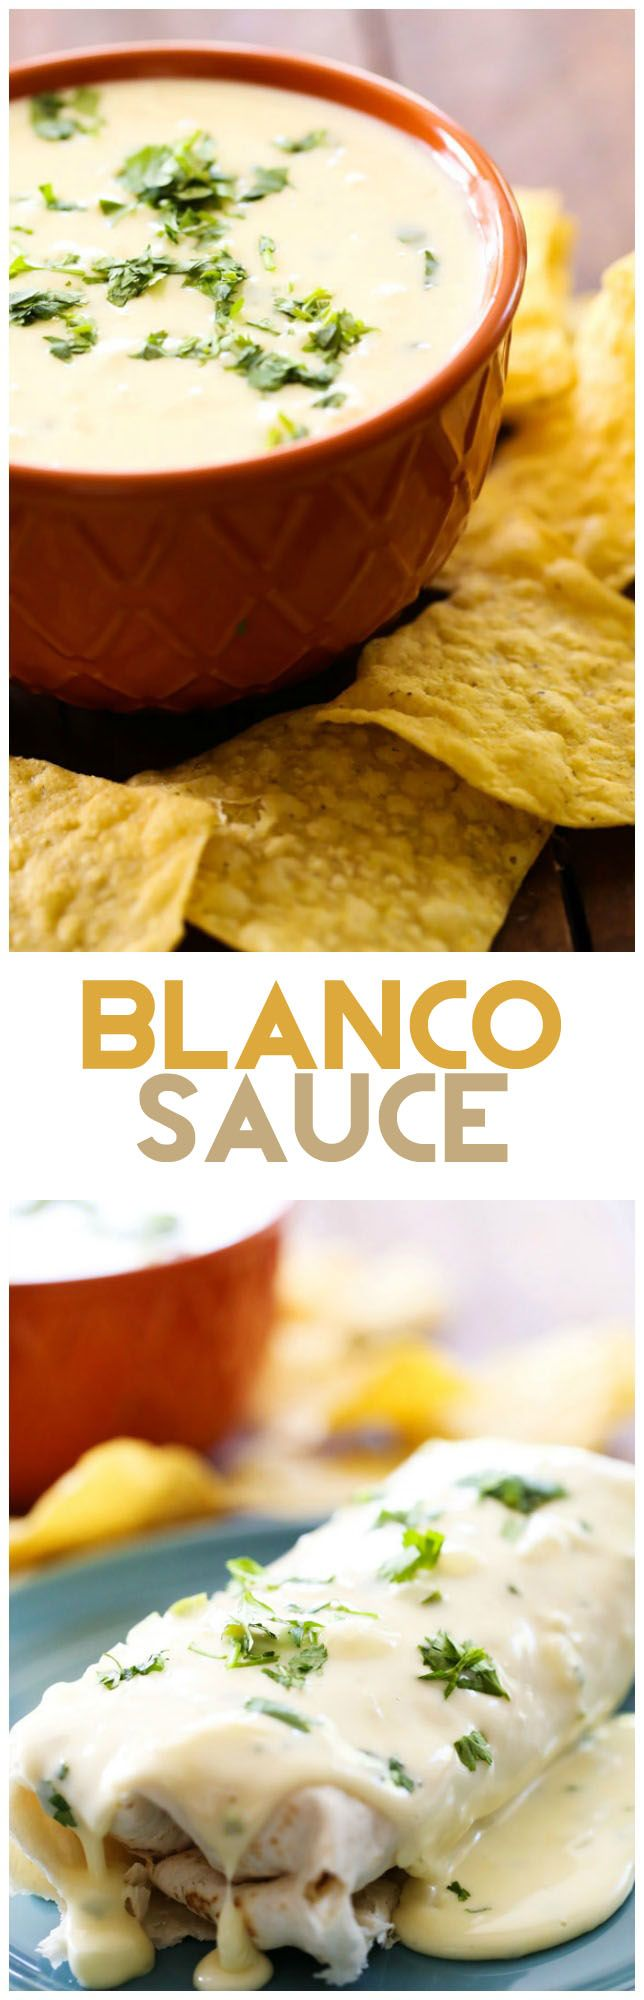 Blanco Sauce... this sauce is creamy, cheesy, perfection! It is my favorite sauce to top my Mexican food with or to dip my chips in!  http://homeexchange.xyz